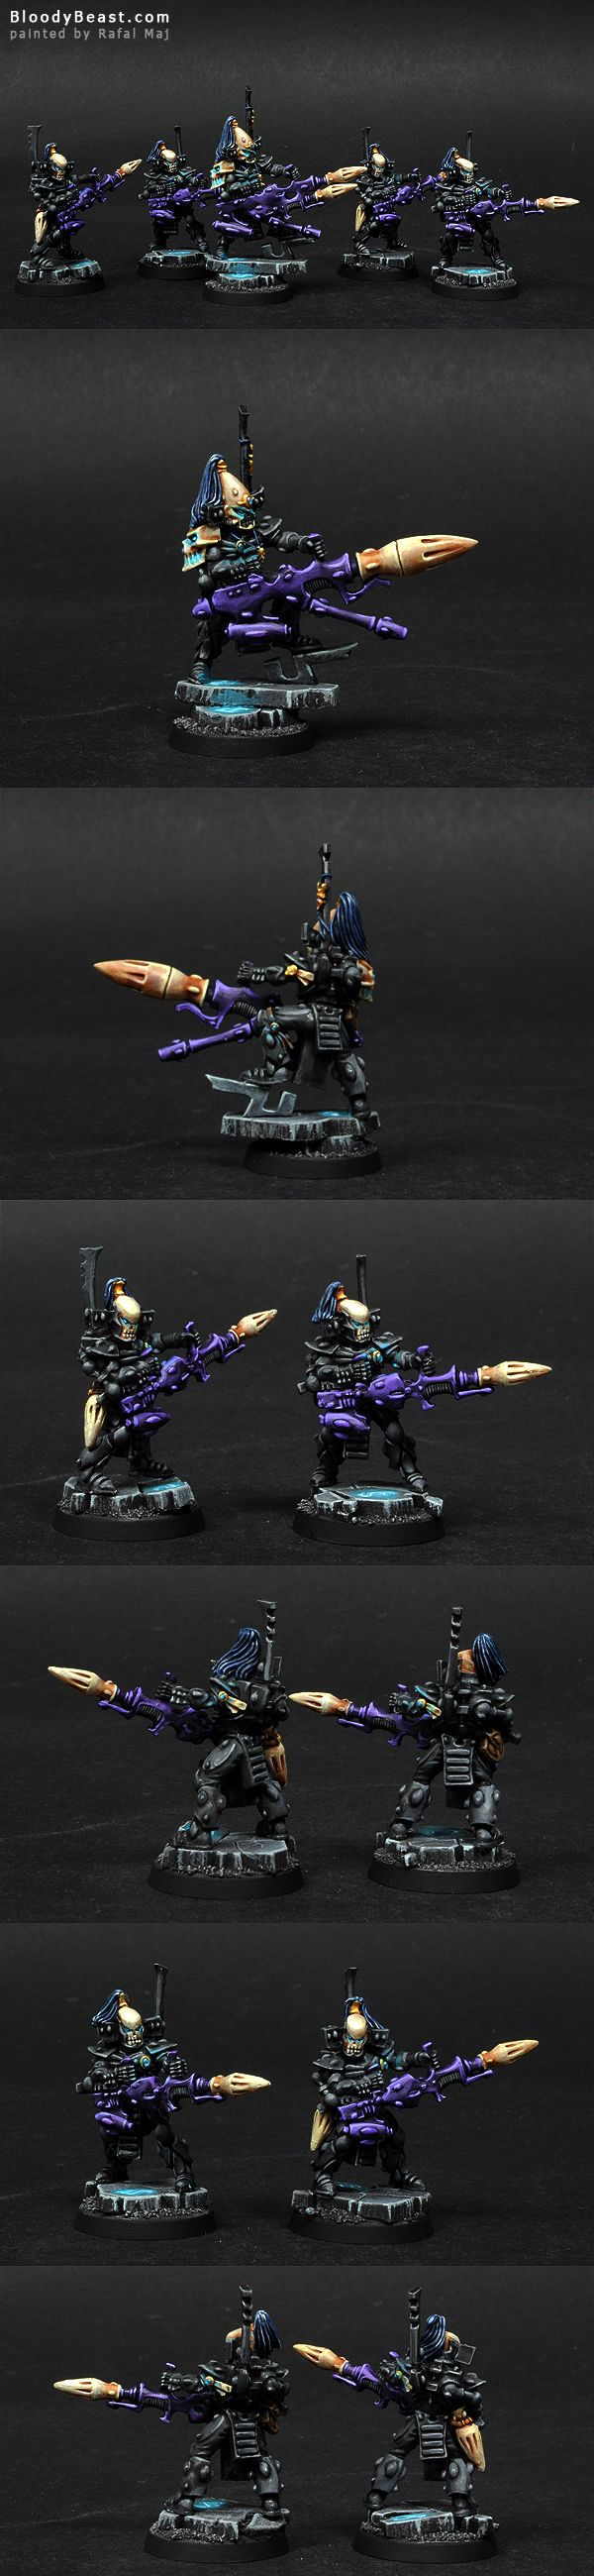 Eldar Ulthwe Dark Reapers painted by Rafal Maj (BloodyBeast.com)